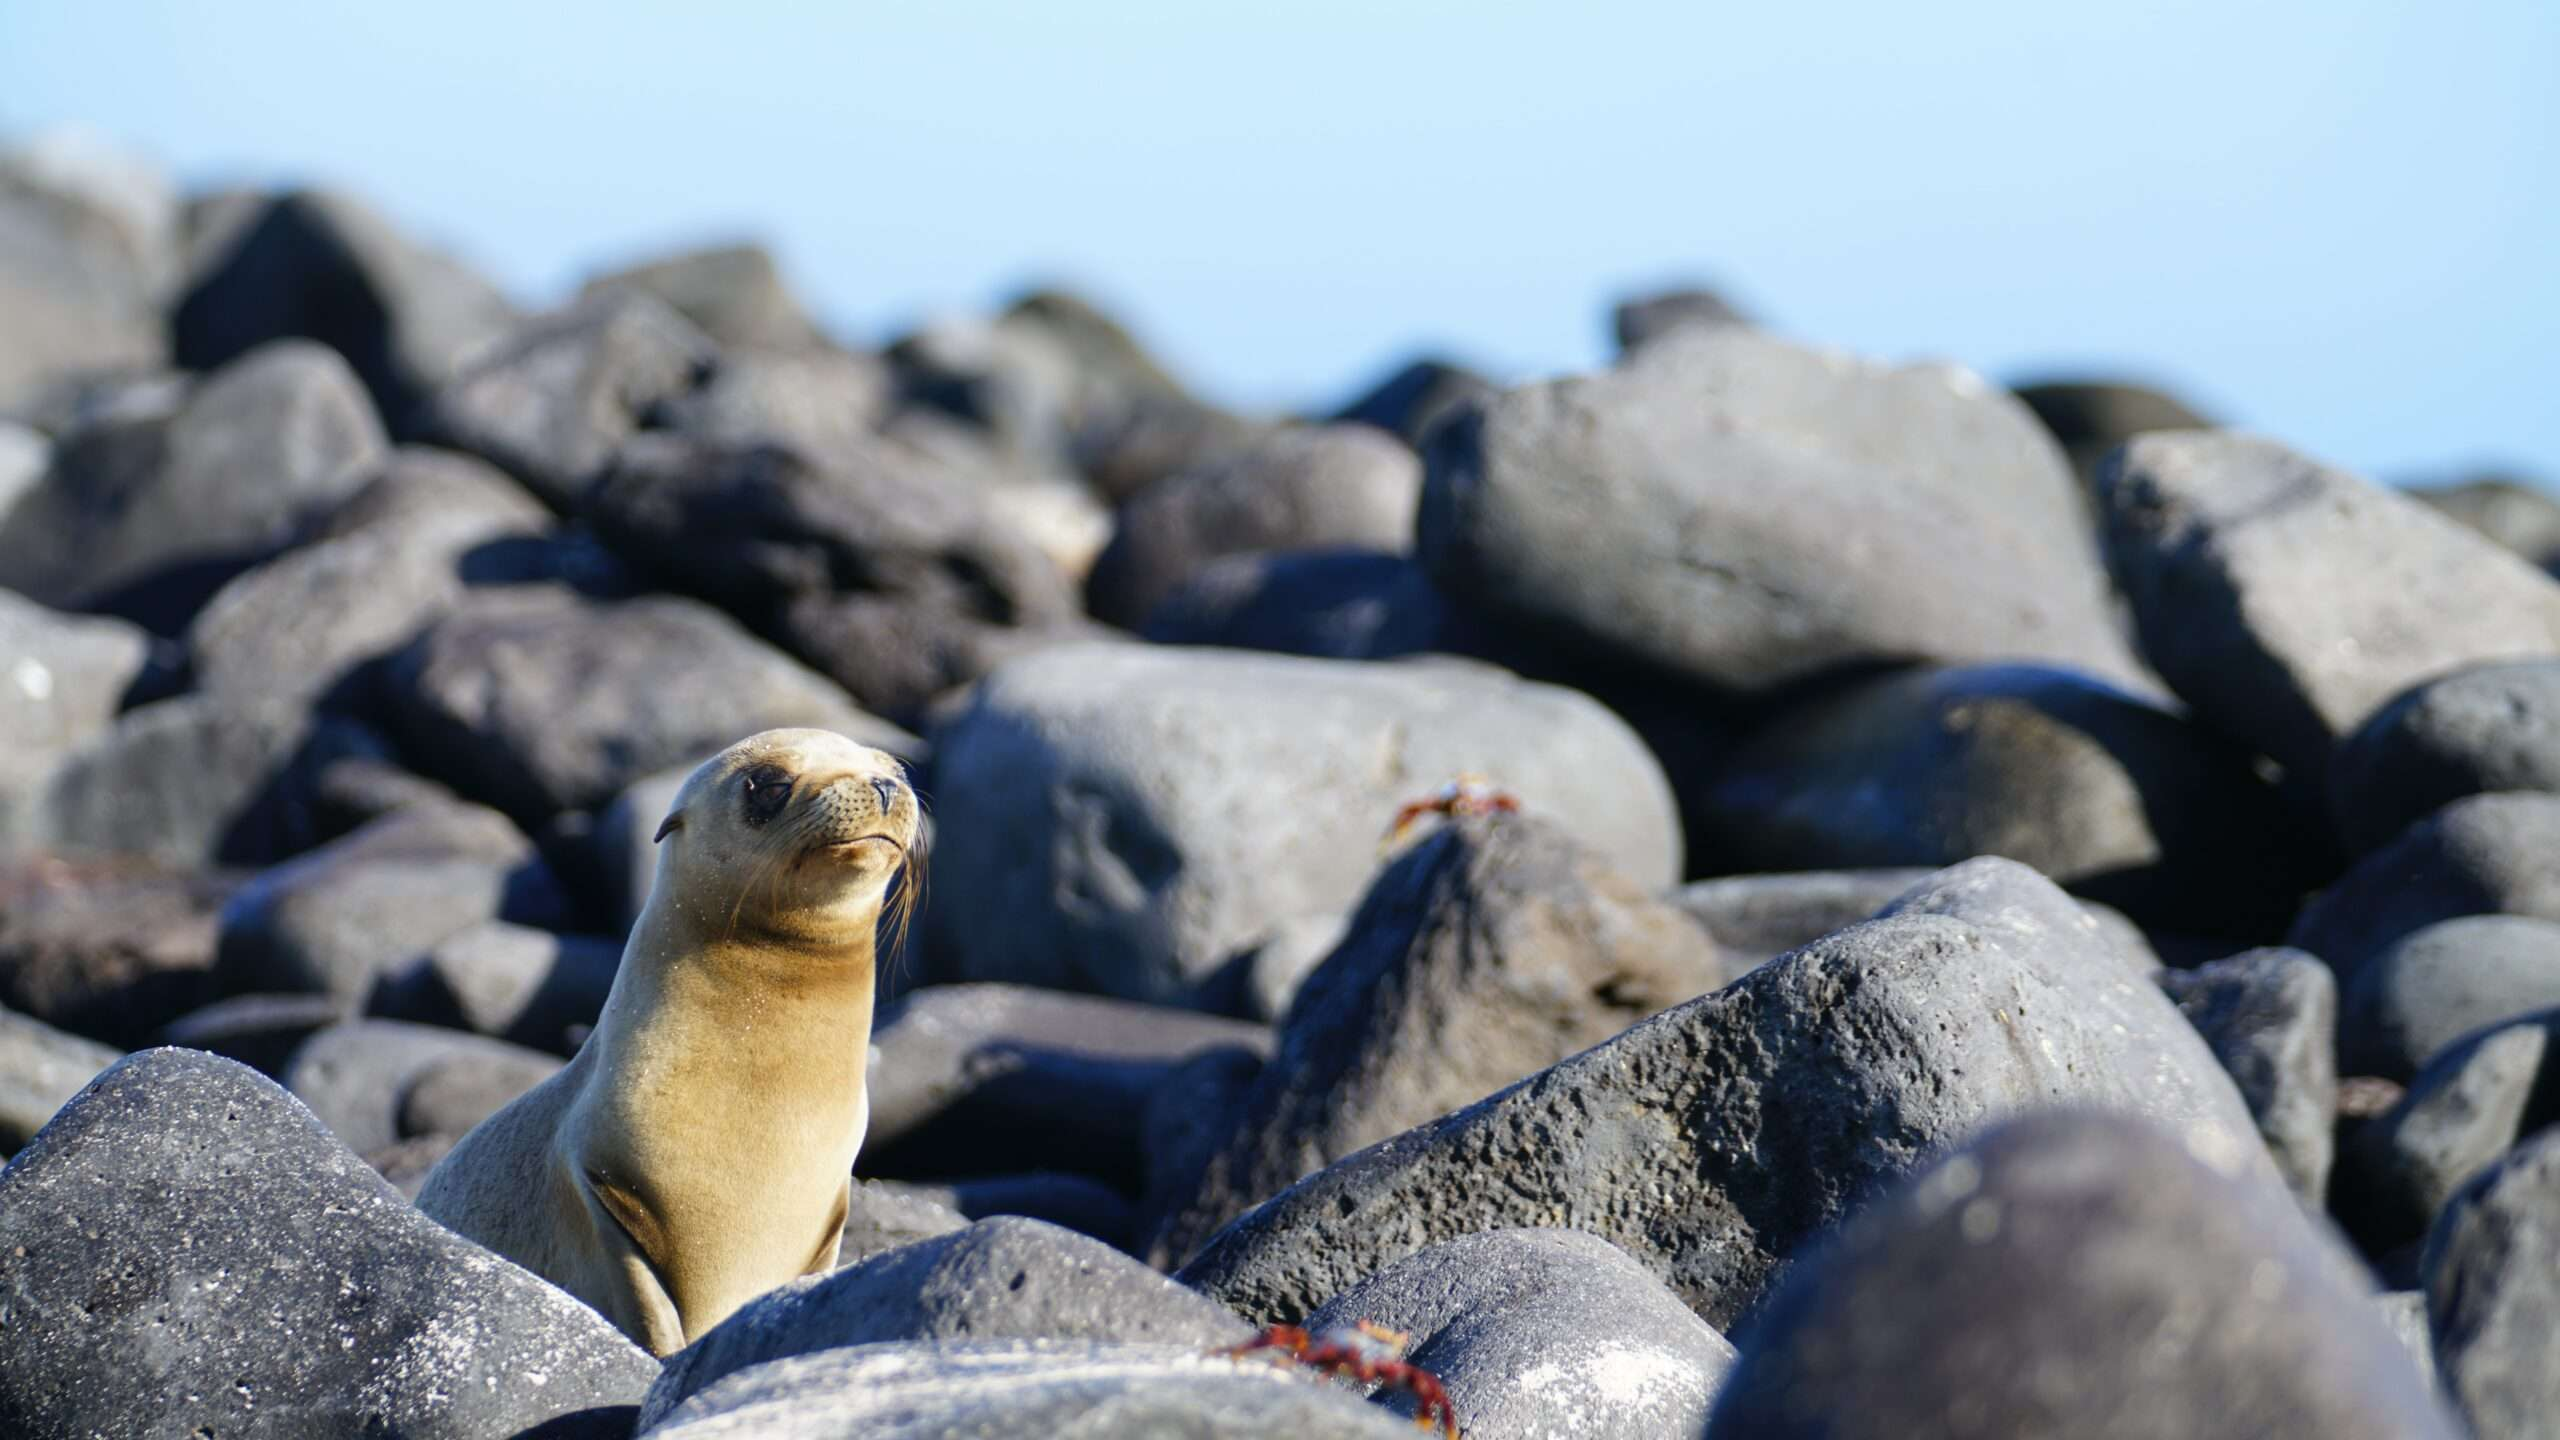 seal pup on the rocks in the Galápagos islands